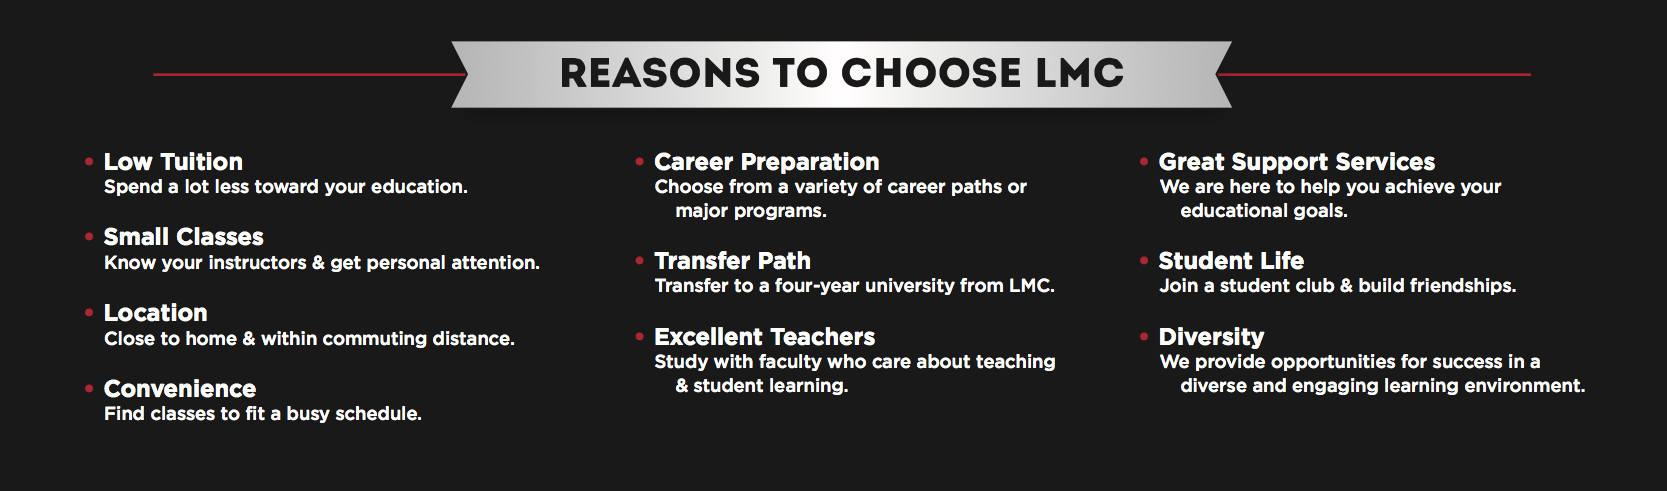 Reasons to choose LMC